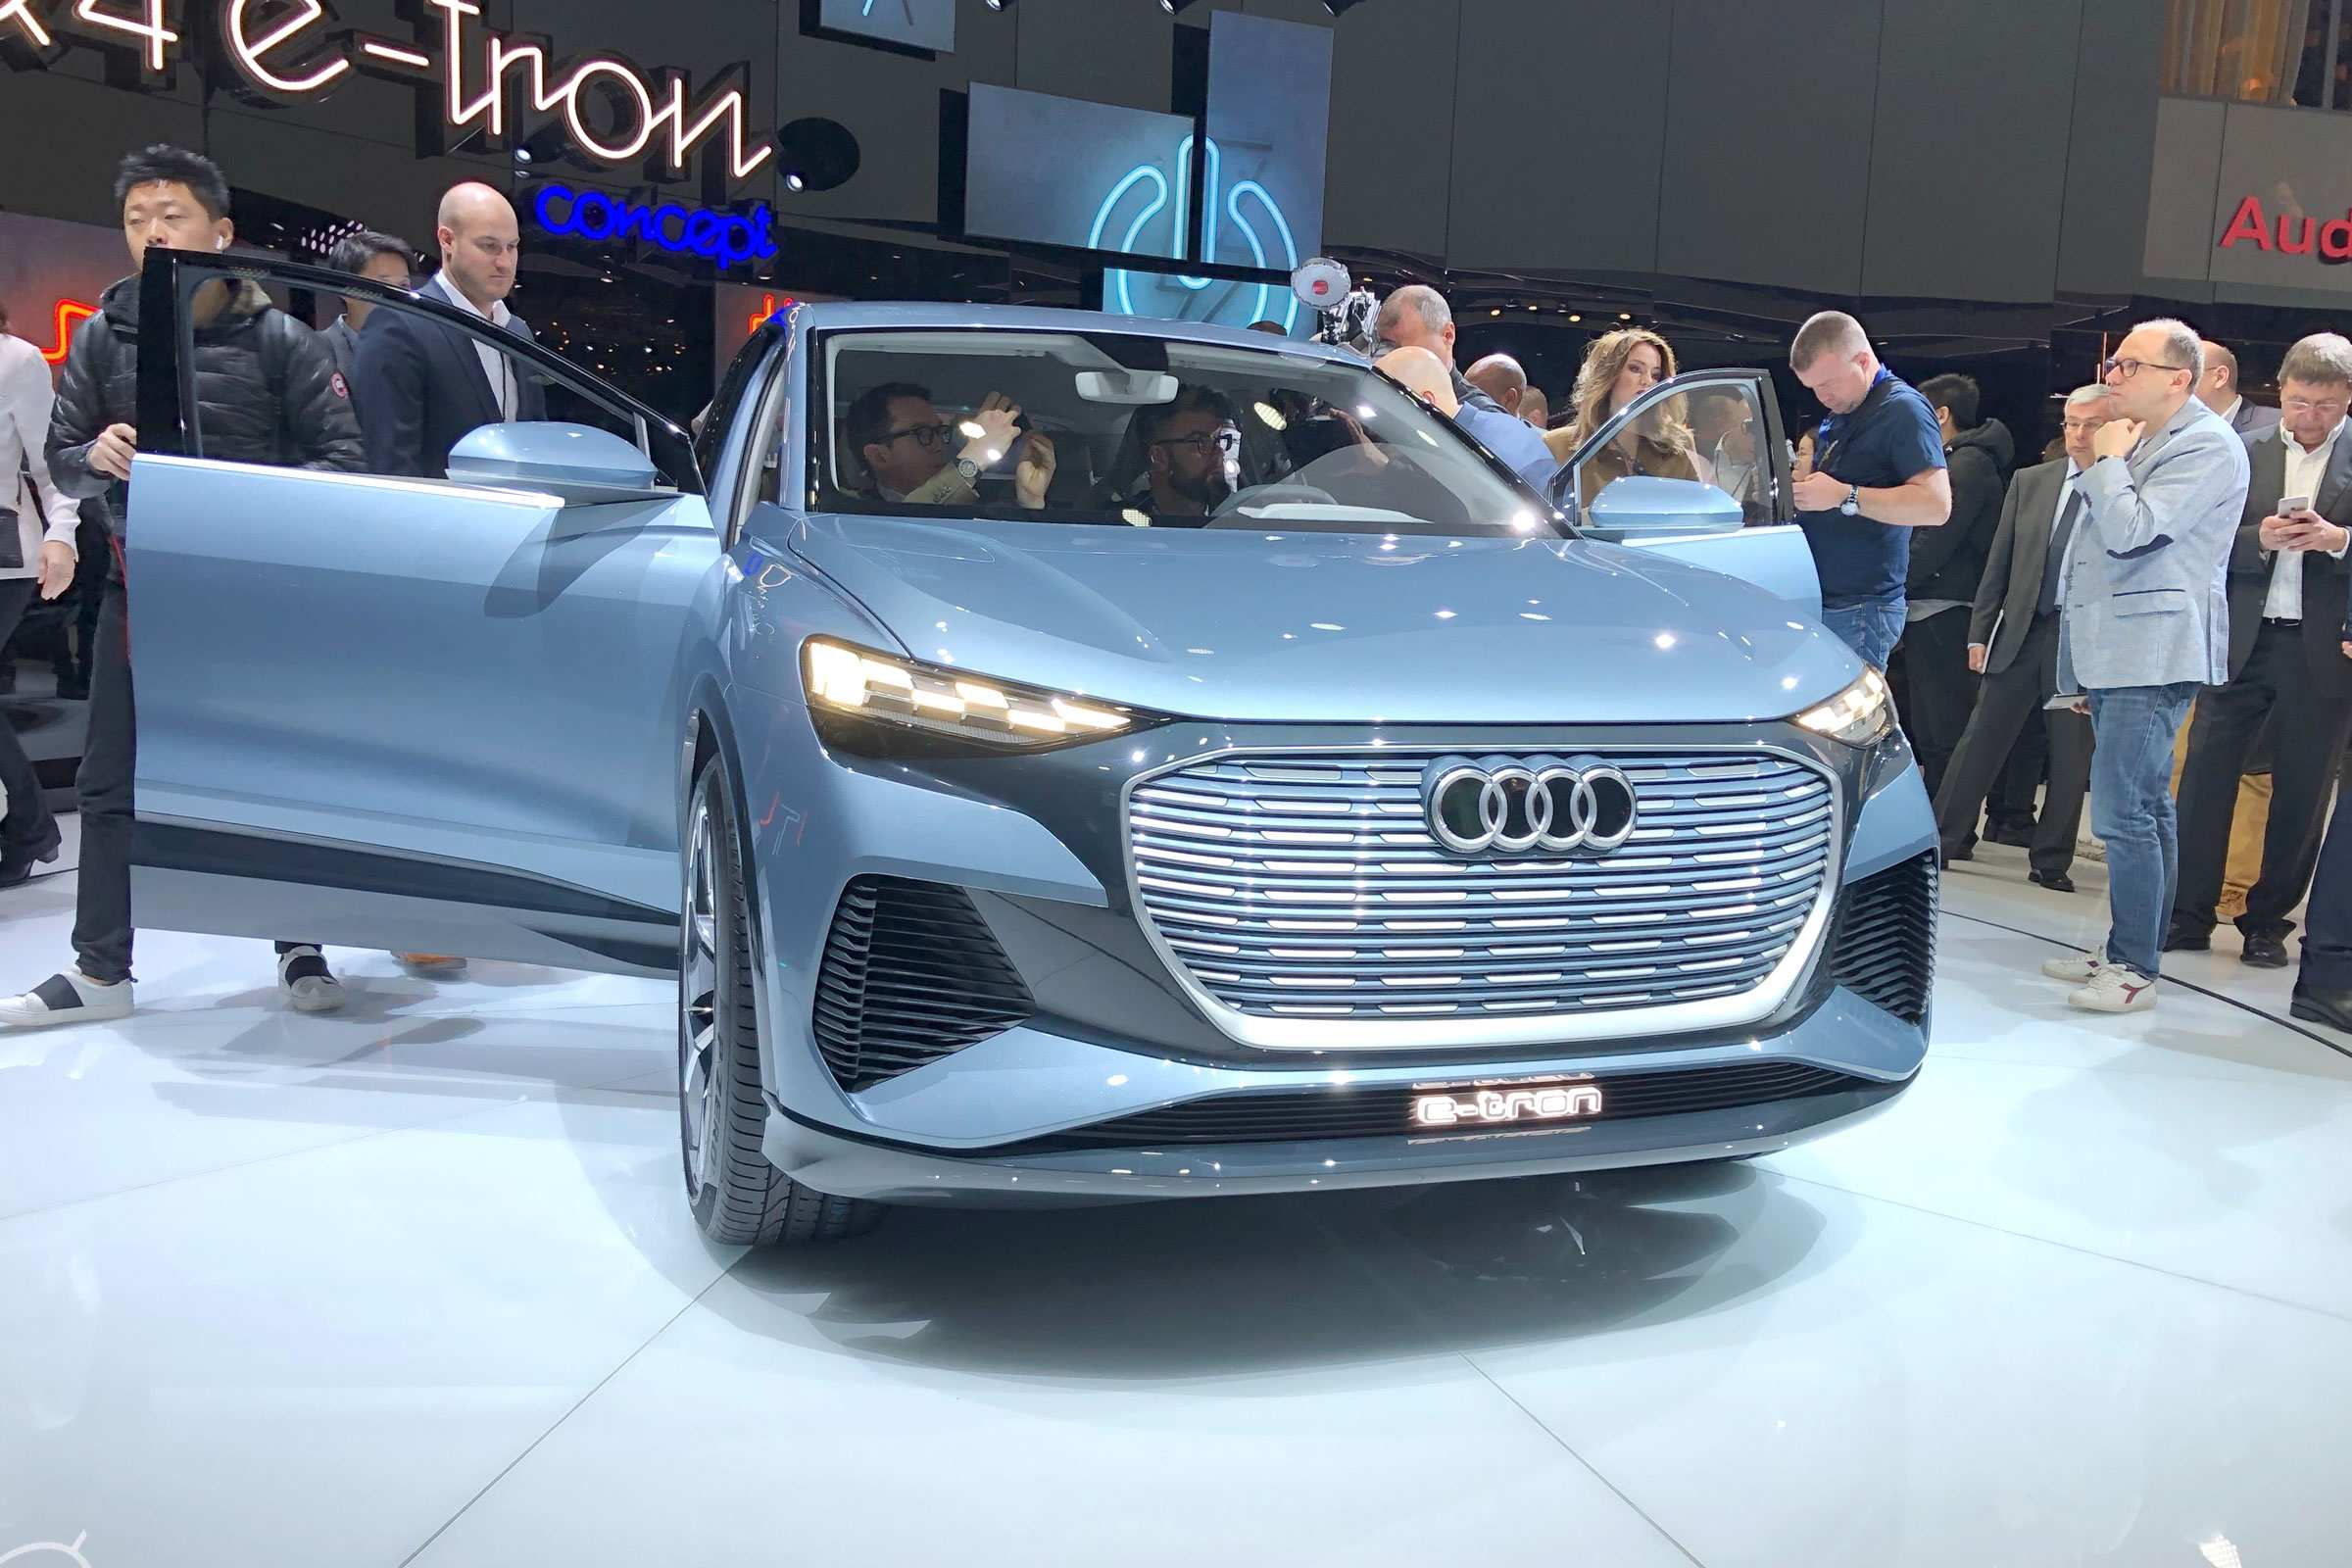 84 New Audi Electric Suv 2020 Spy Shoot by Audi Electric Suv 2020